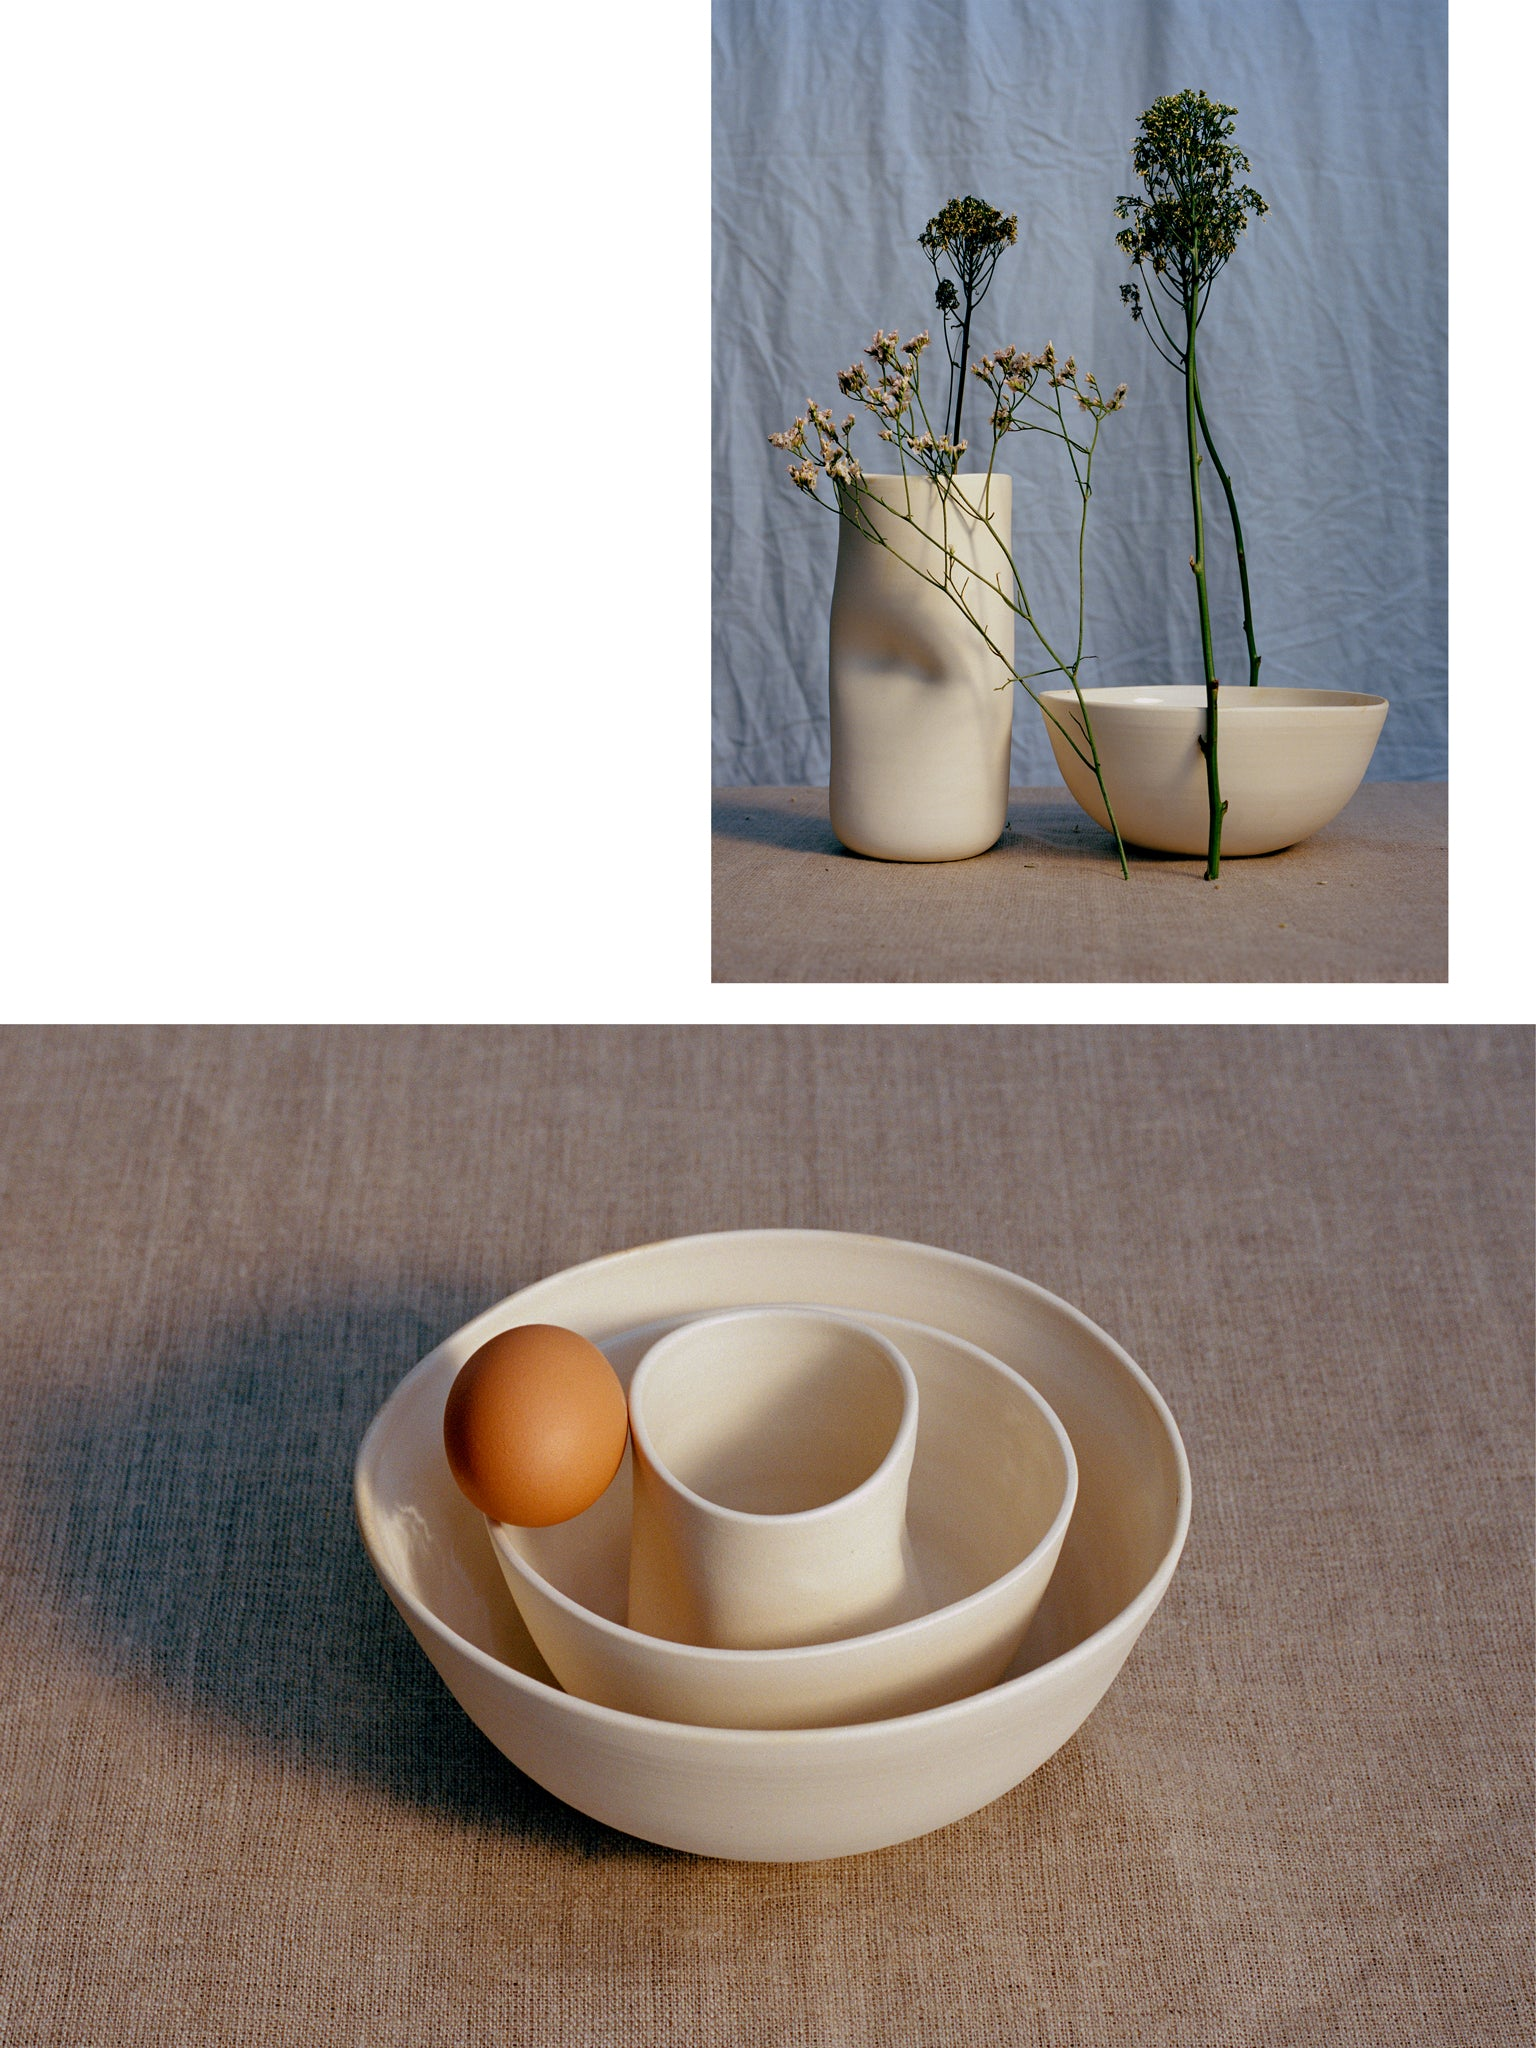 luxurious handmade ceramic still-life